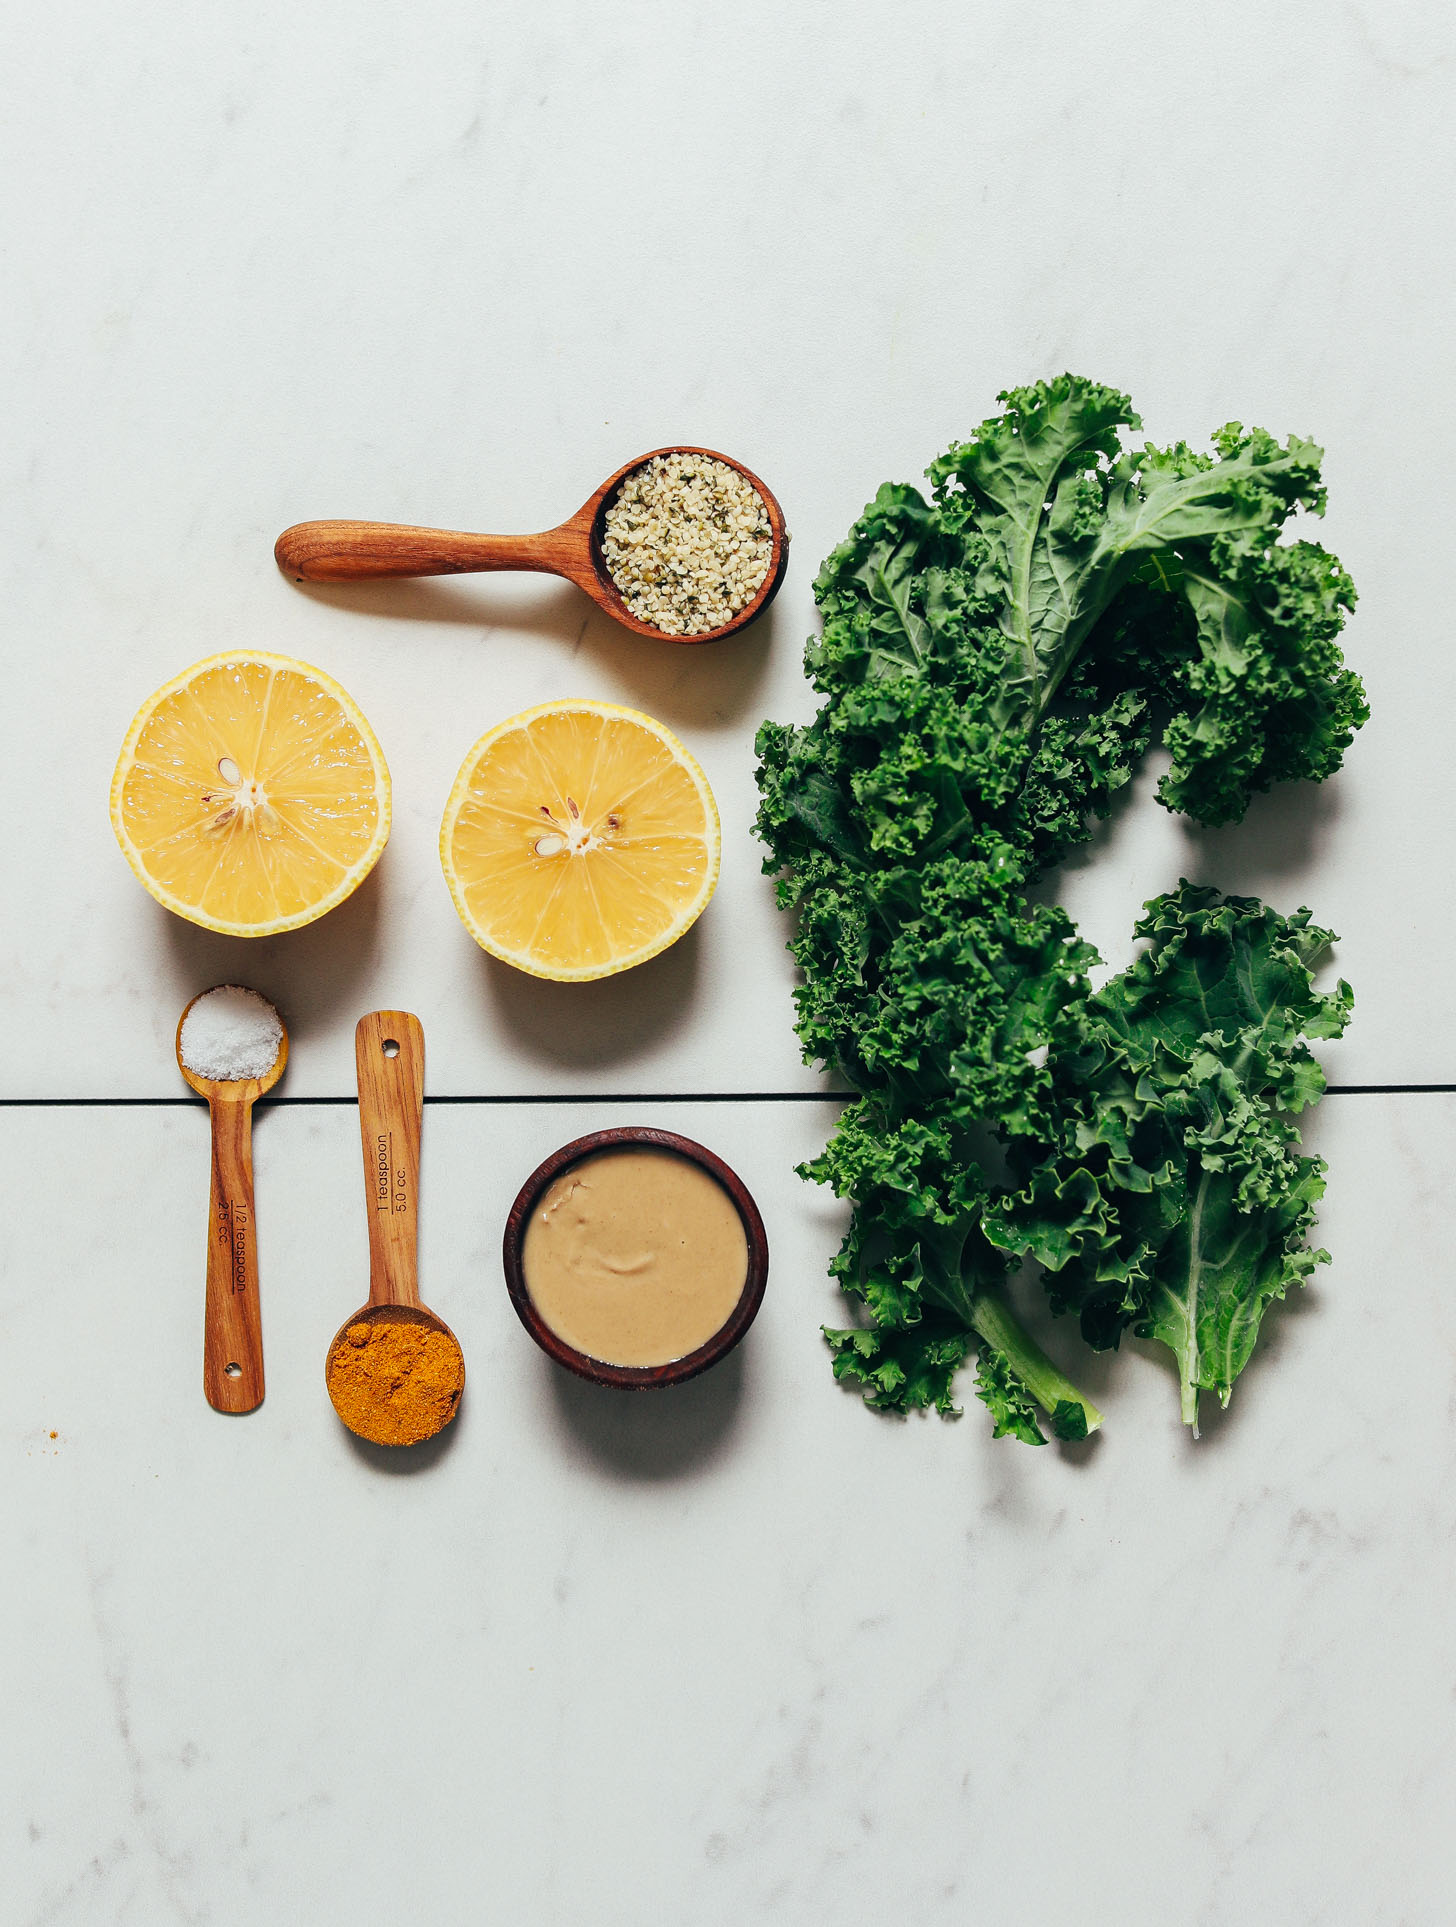 Kale, hemp seeds, lemon, tahini, curry powder, and salt for making our easy sautéed kale recipe